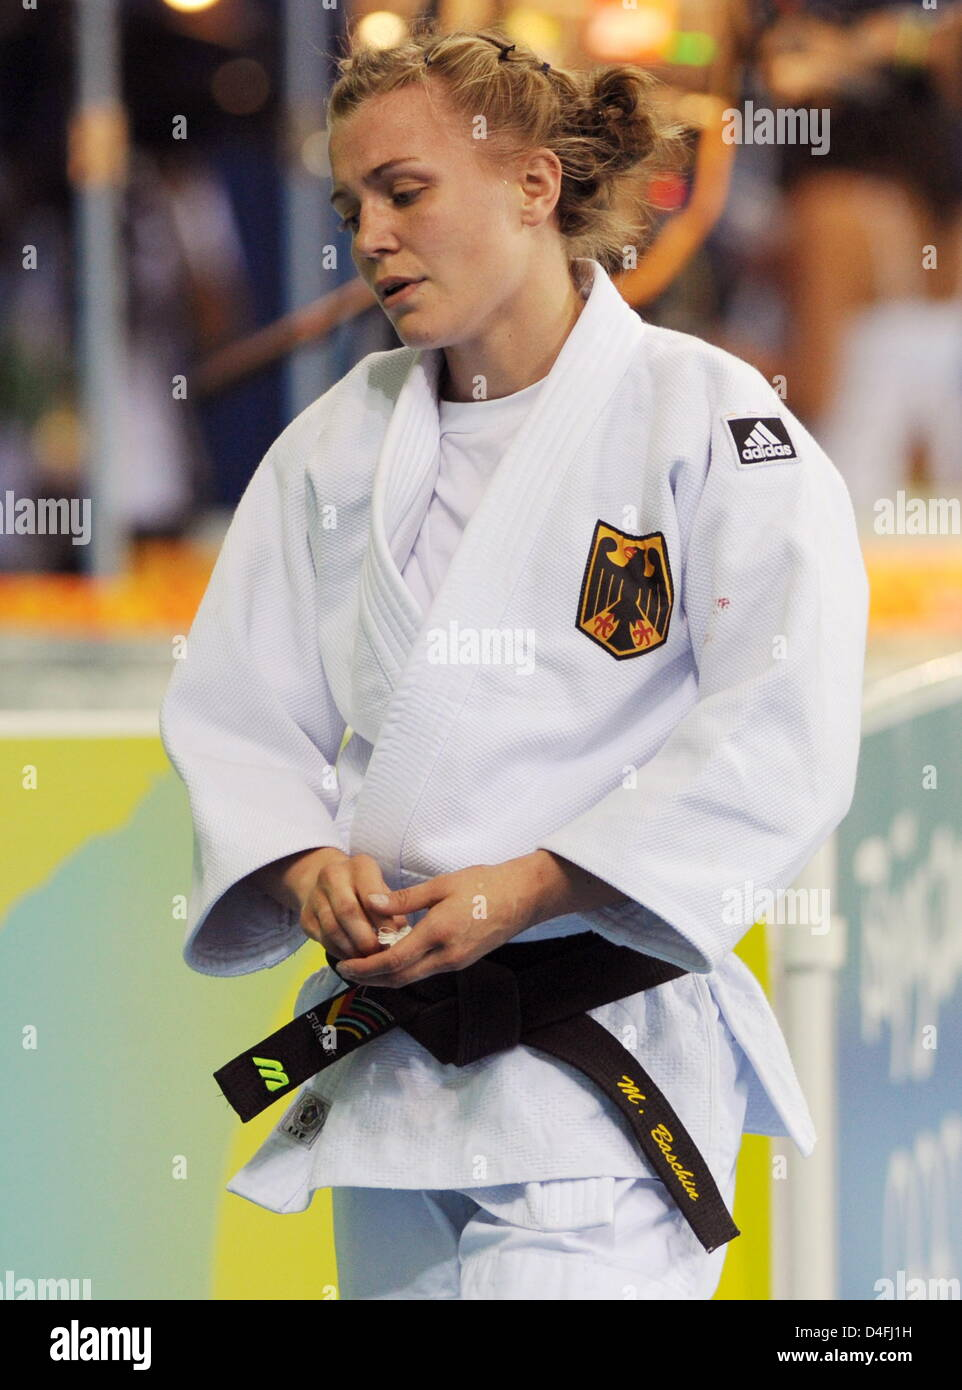 Michaela Baschin of Germany loose against Ludmilla Bogdanova (unseen) of Russia in the repechage round in the 48kg - Stock Image